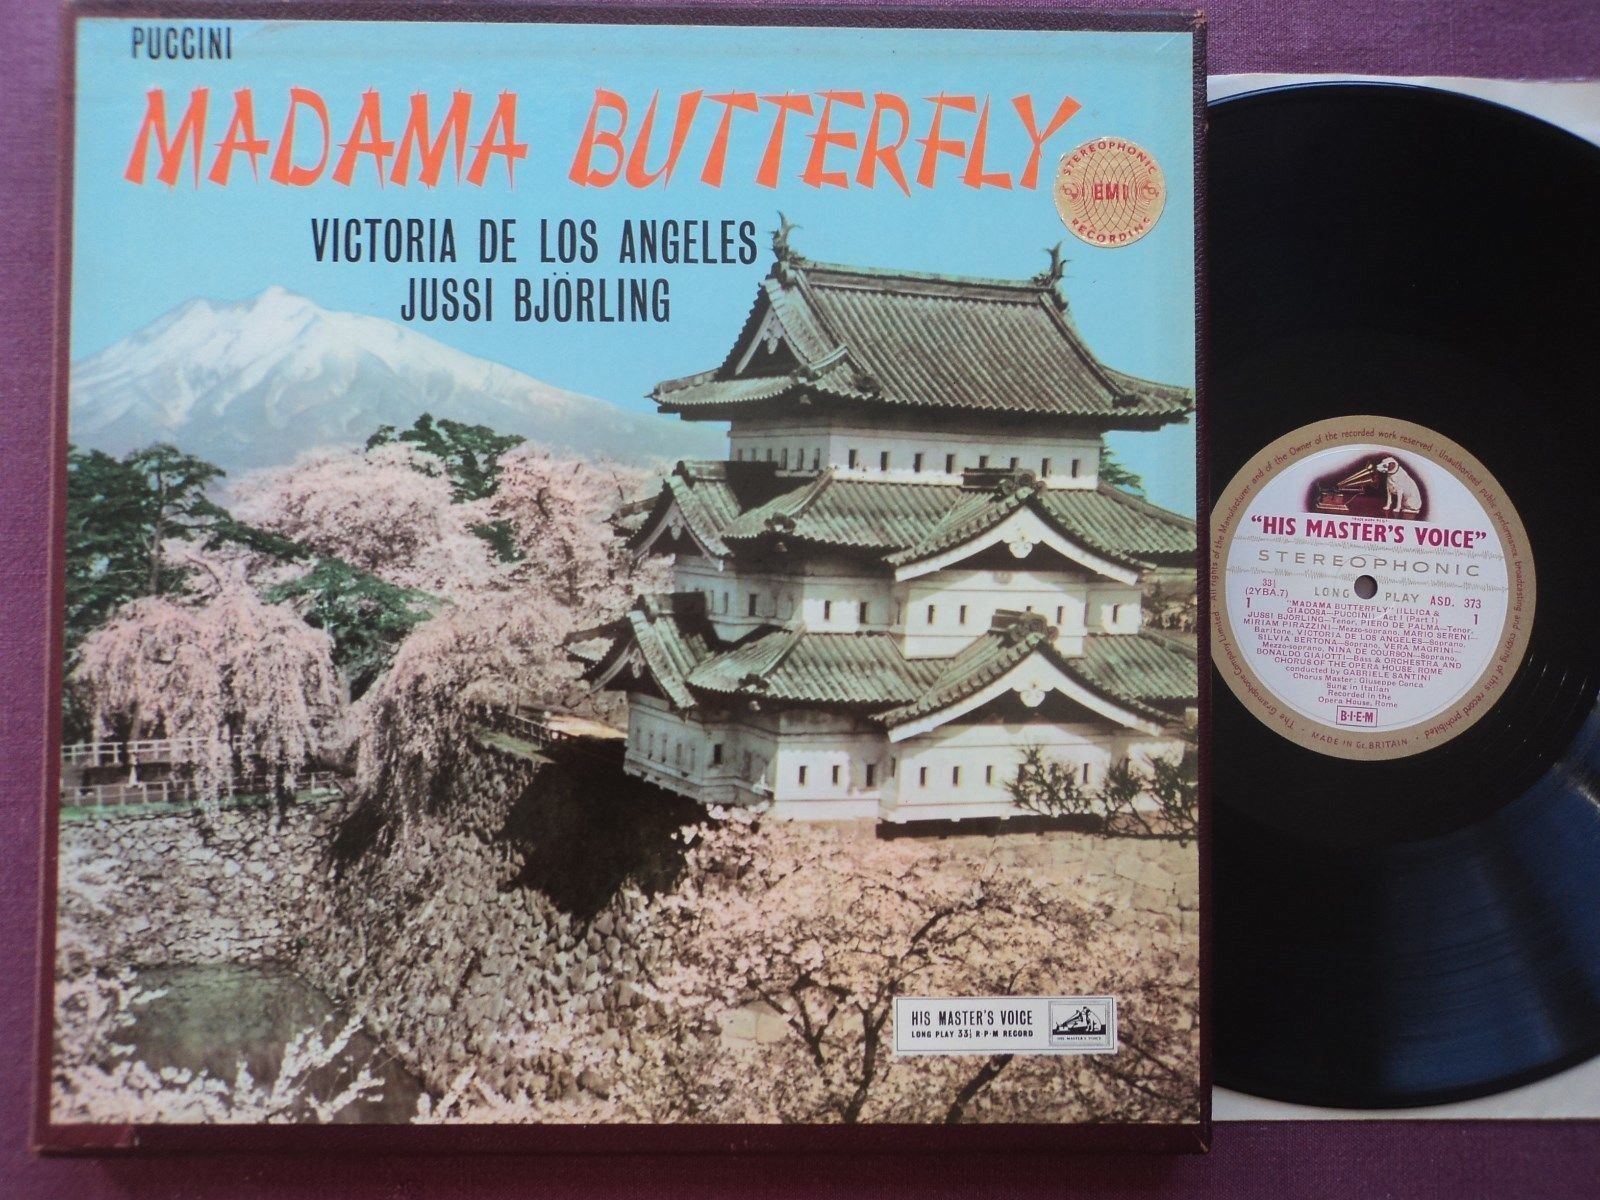 ASD 373-5, g/c UK orig. PUCCINI: Madame Butterfly, DE LOS ANGELES, BJÖRLING, NM